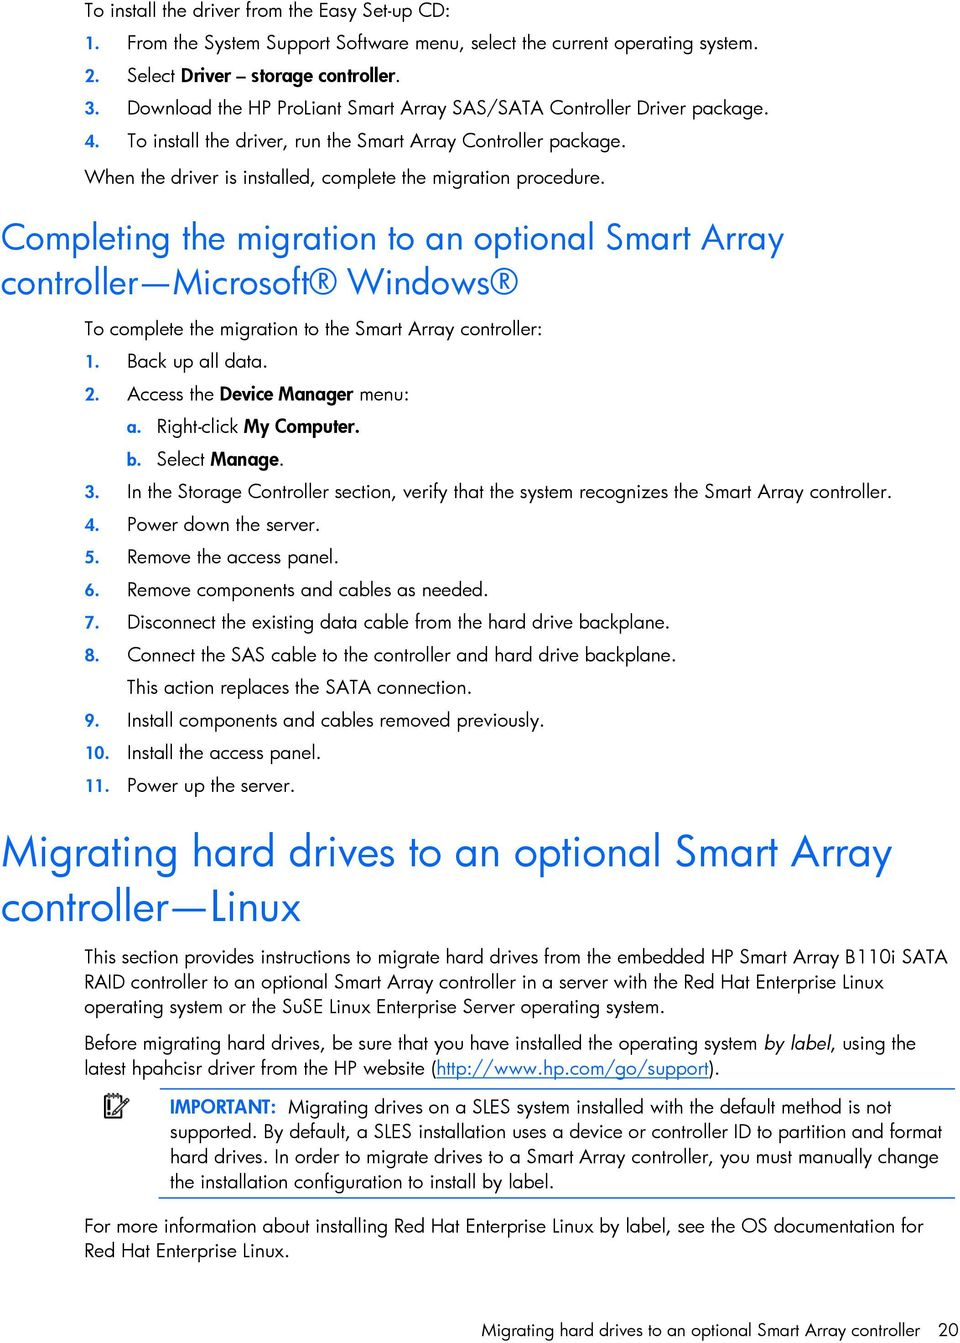 When the driver is installed, complete the migration procedure.